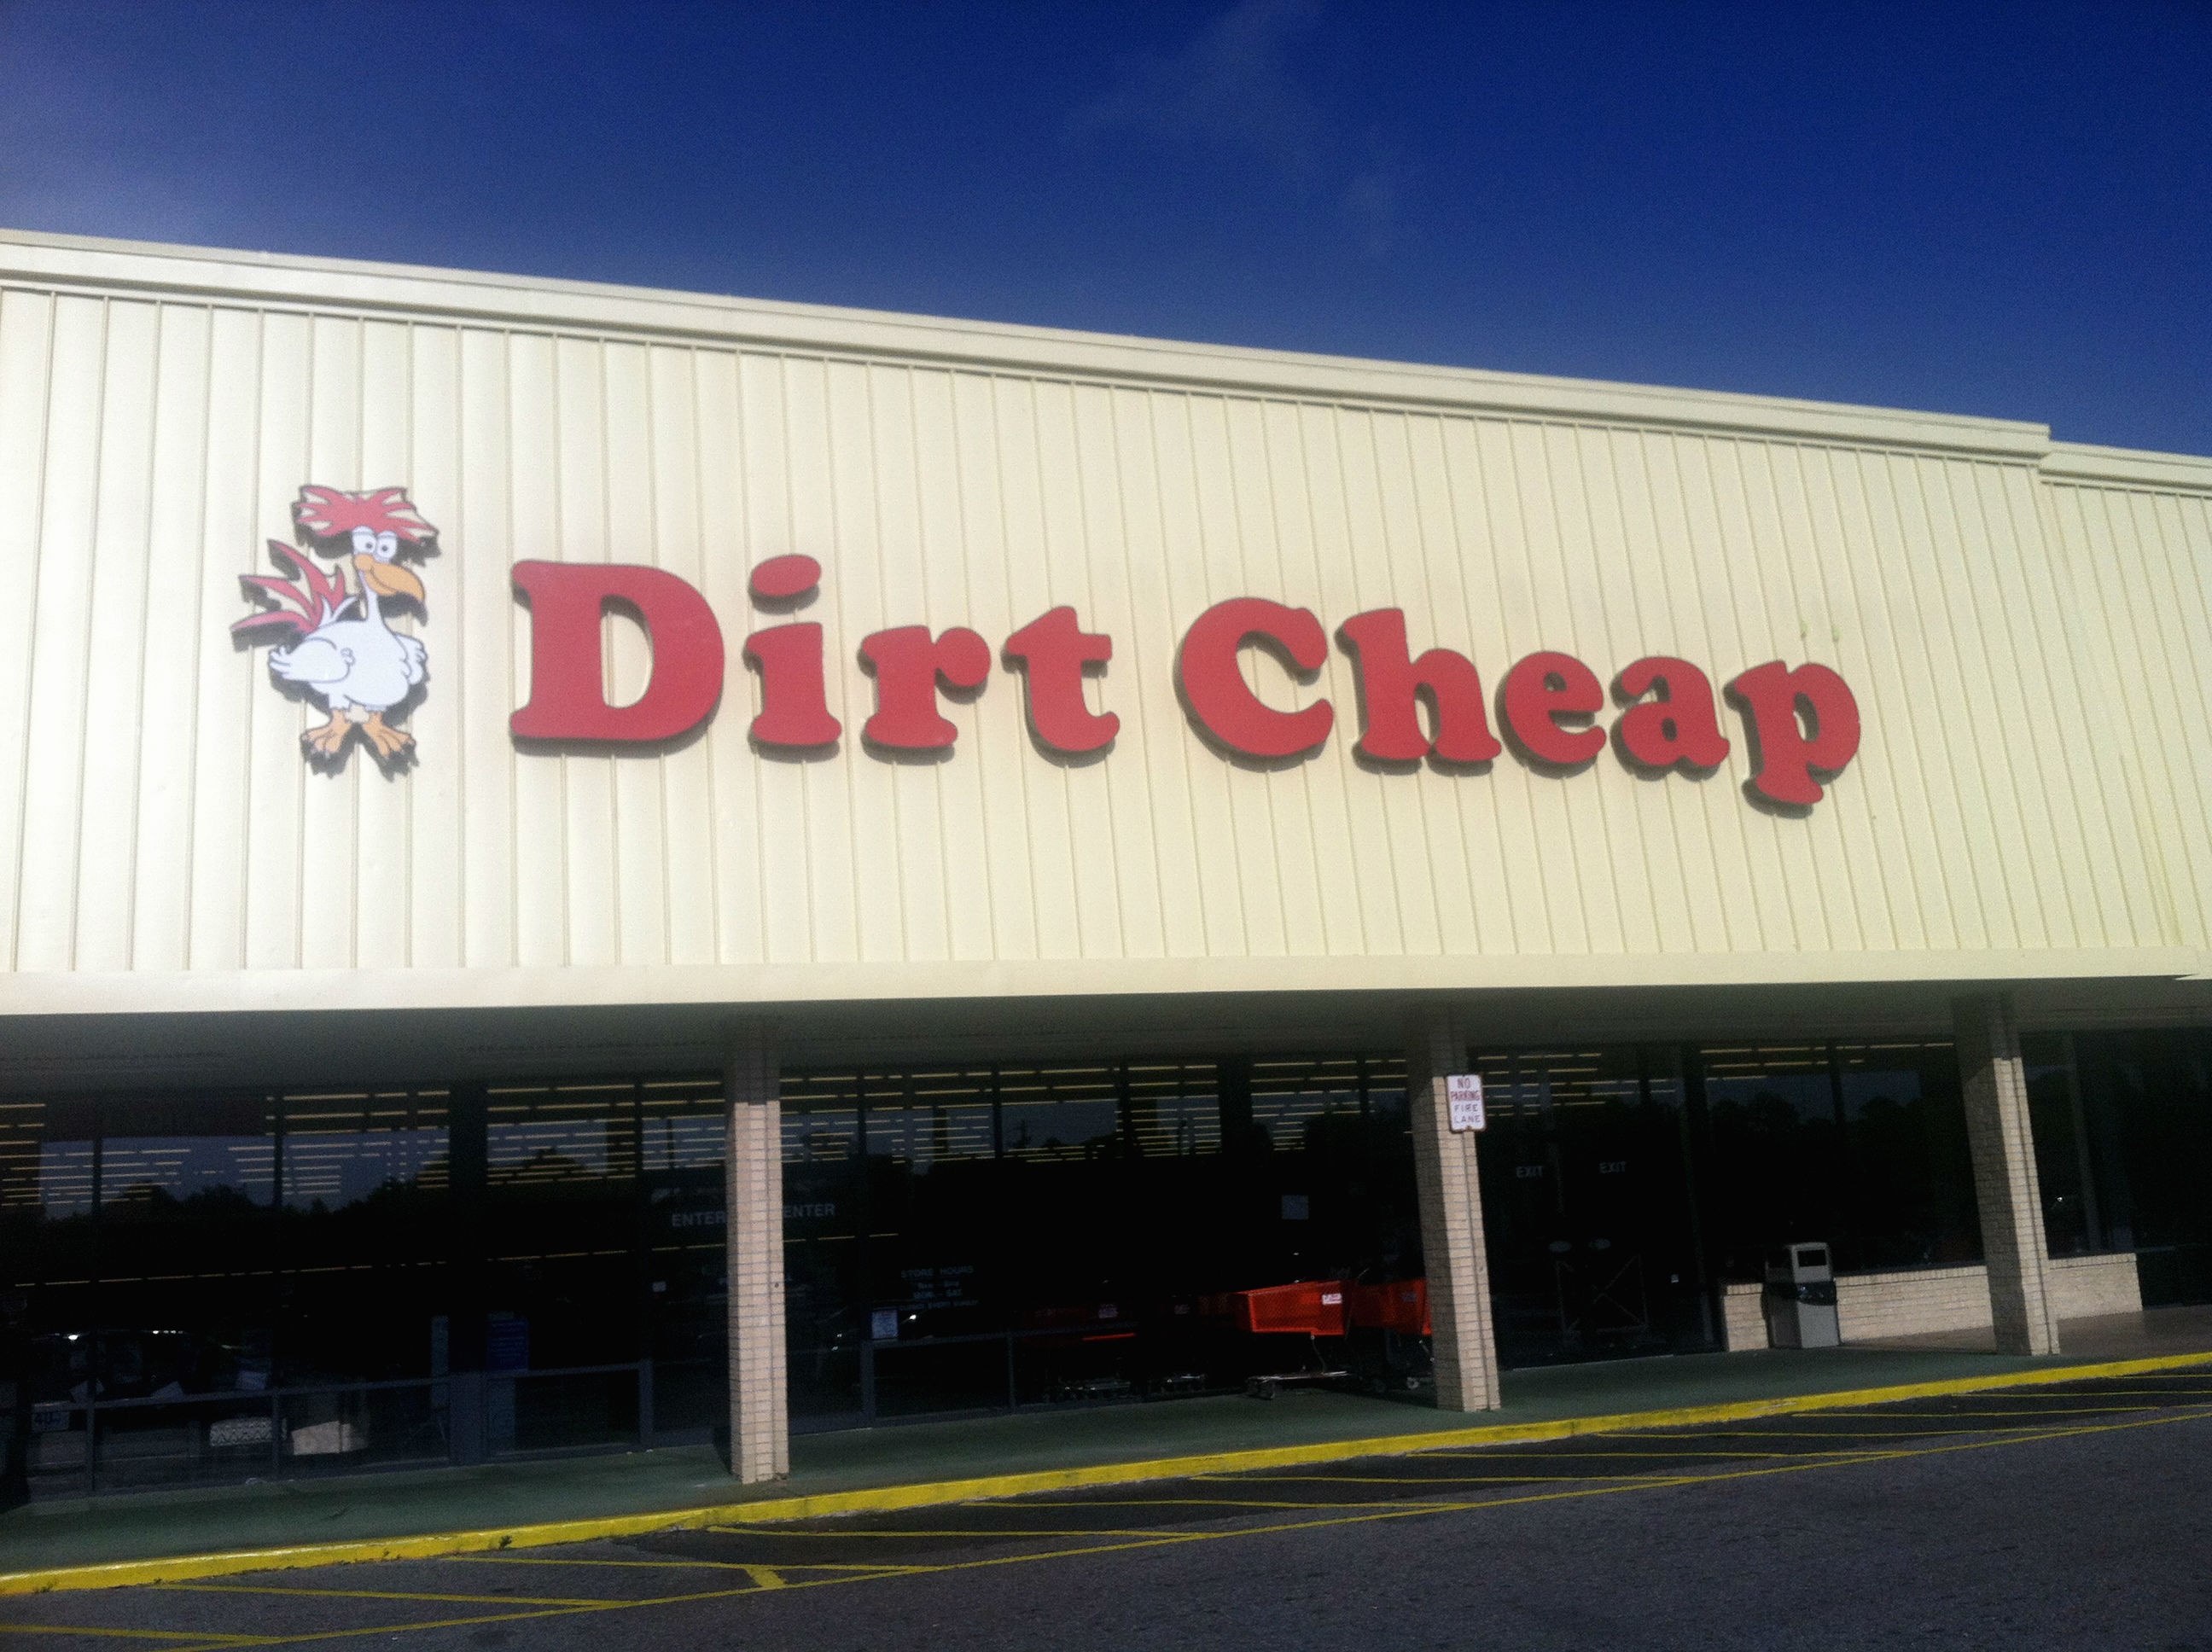 Pensacola Dirt Cheap - Fairfield